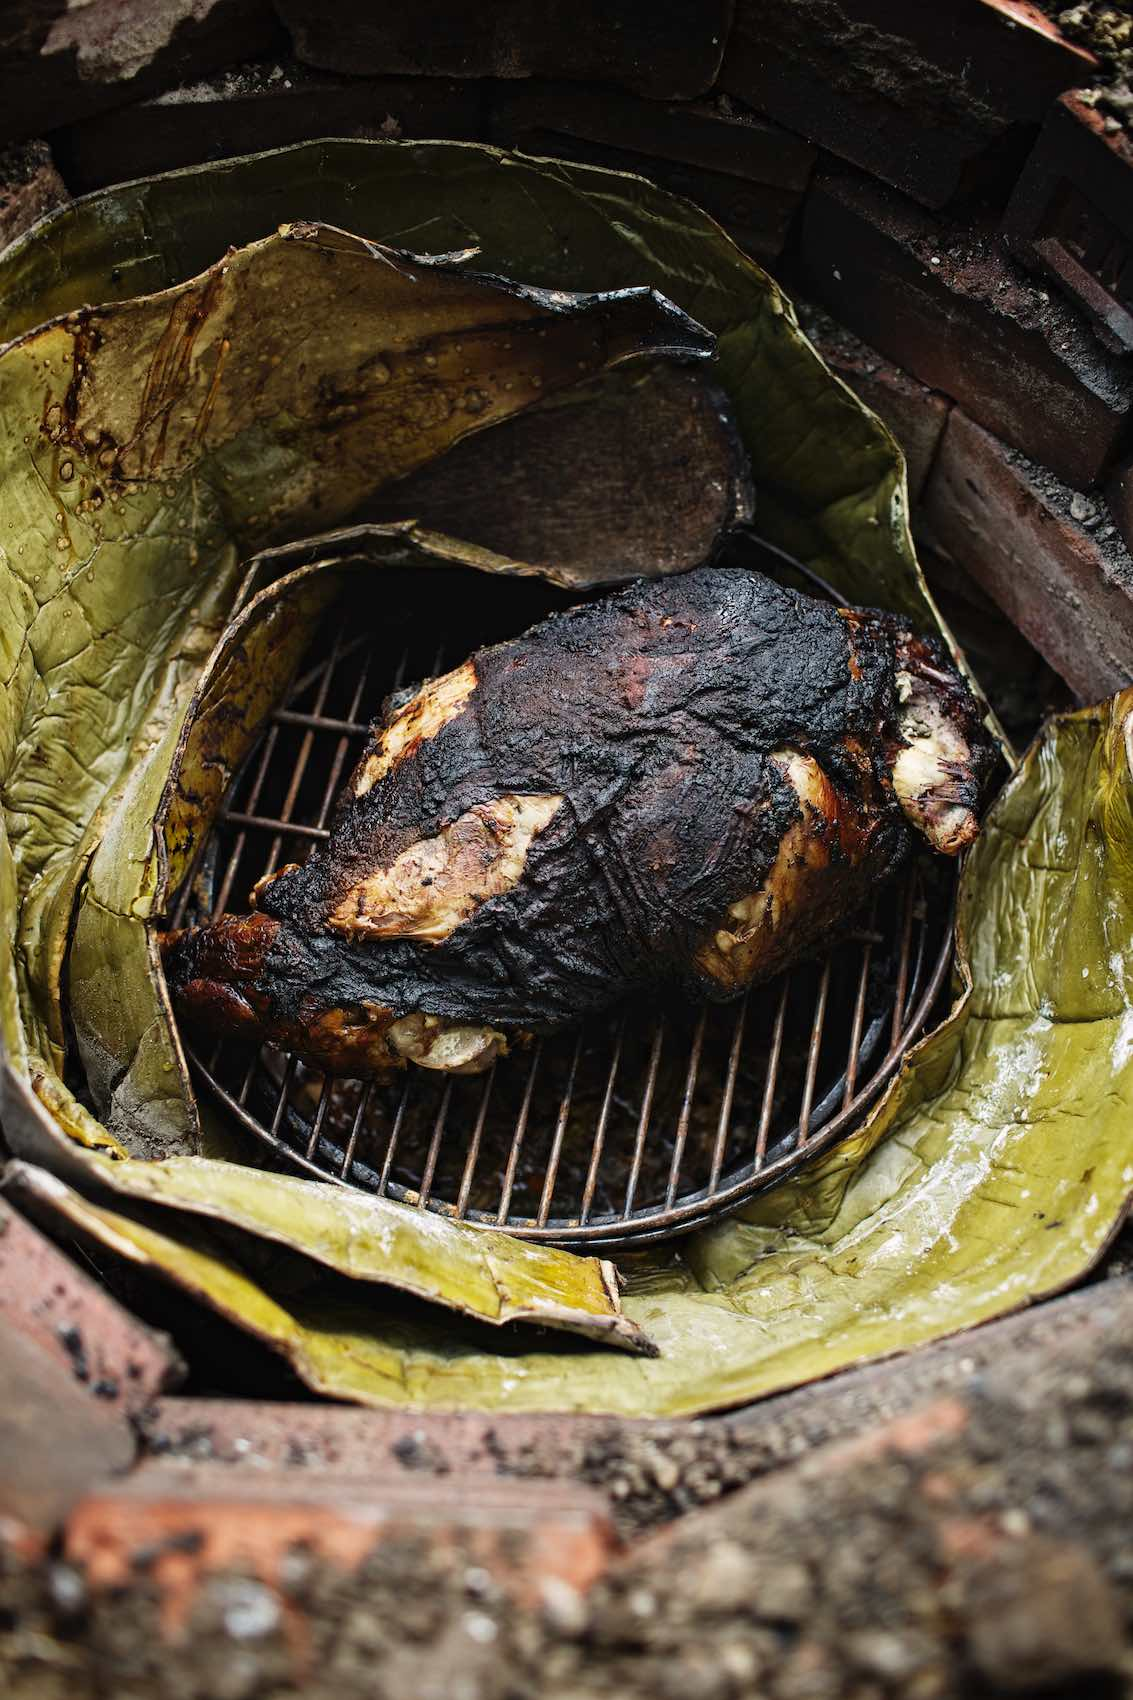 Jody Horton Photography - Meat cooked in leaved on grill.